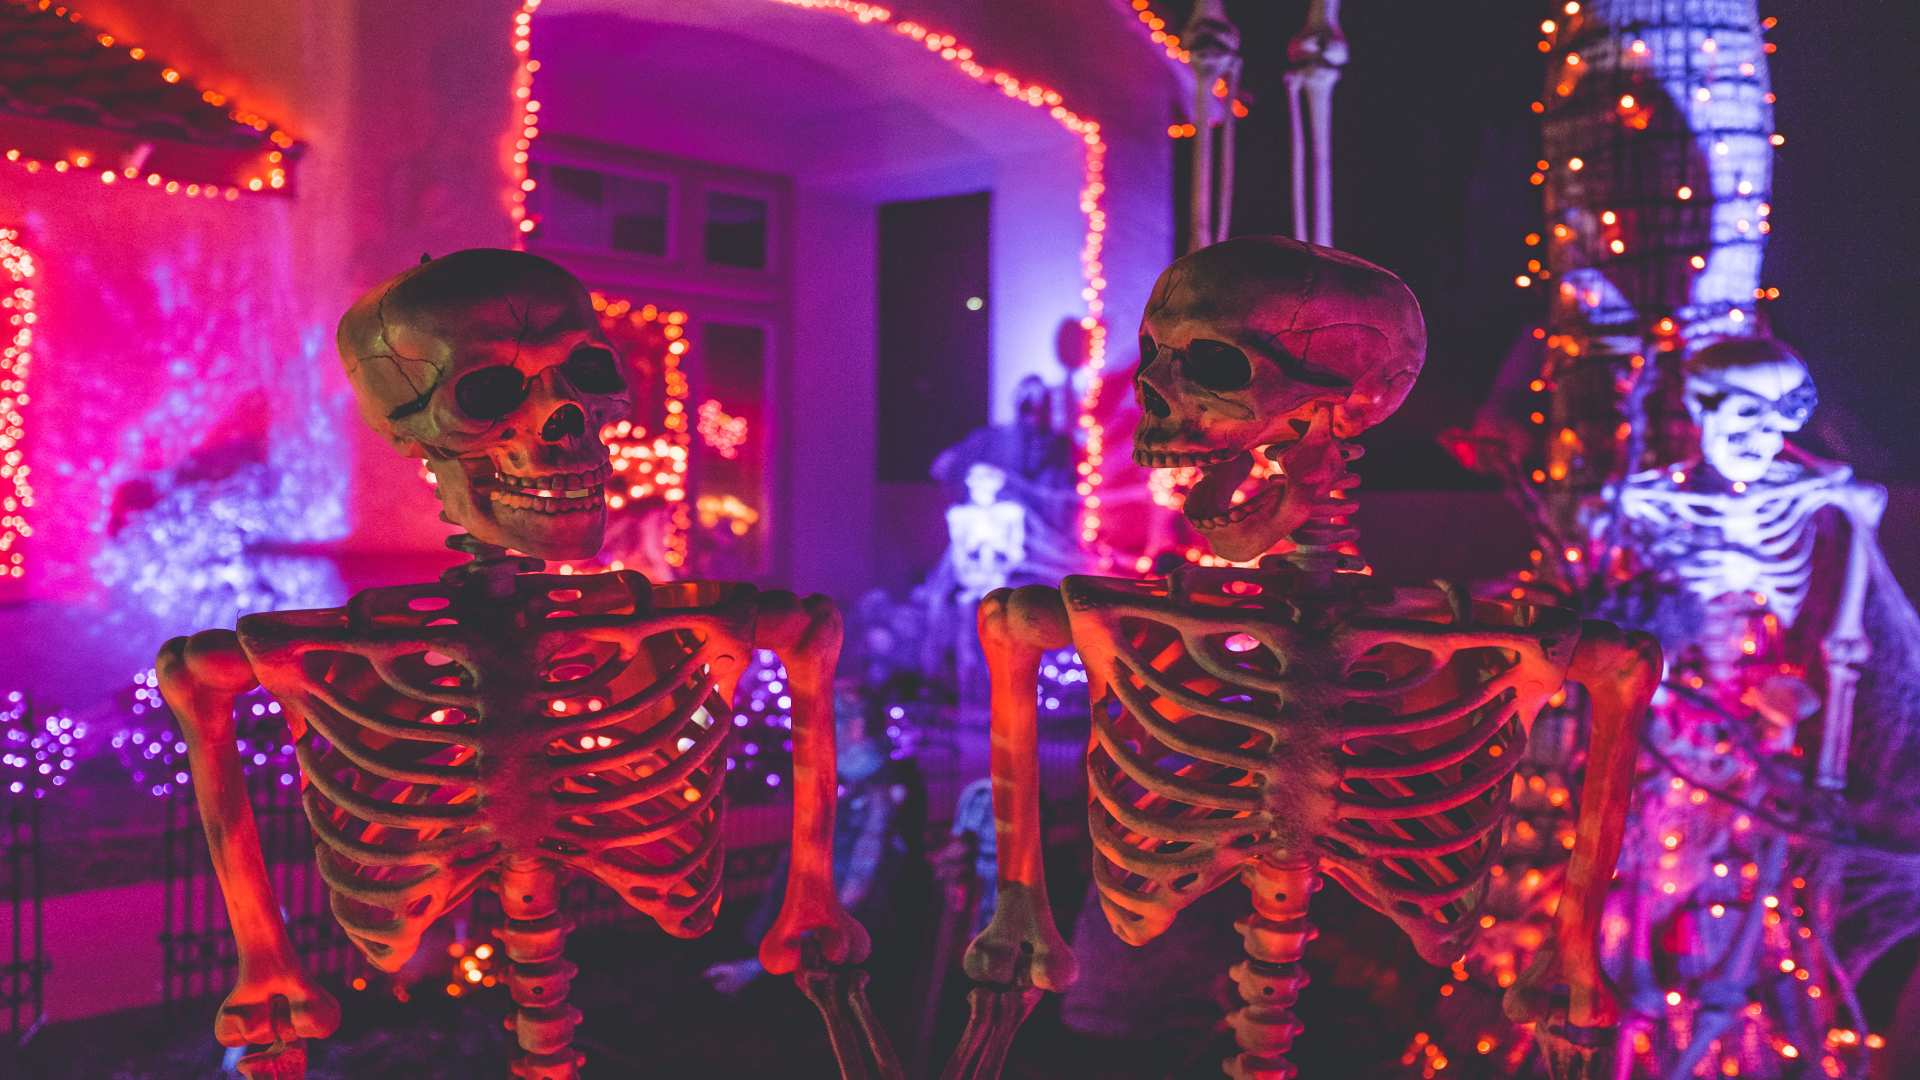 https://jammybear.com/short-notice-halloween-content-ideas/